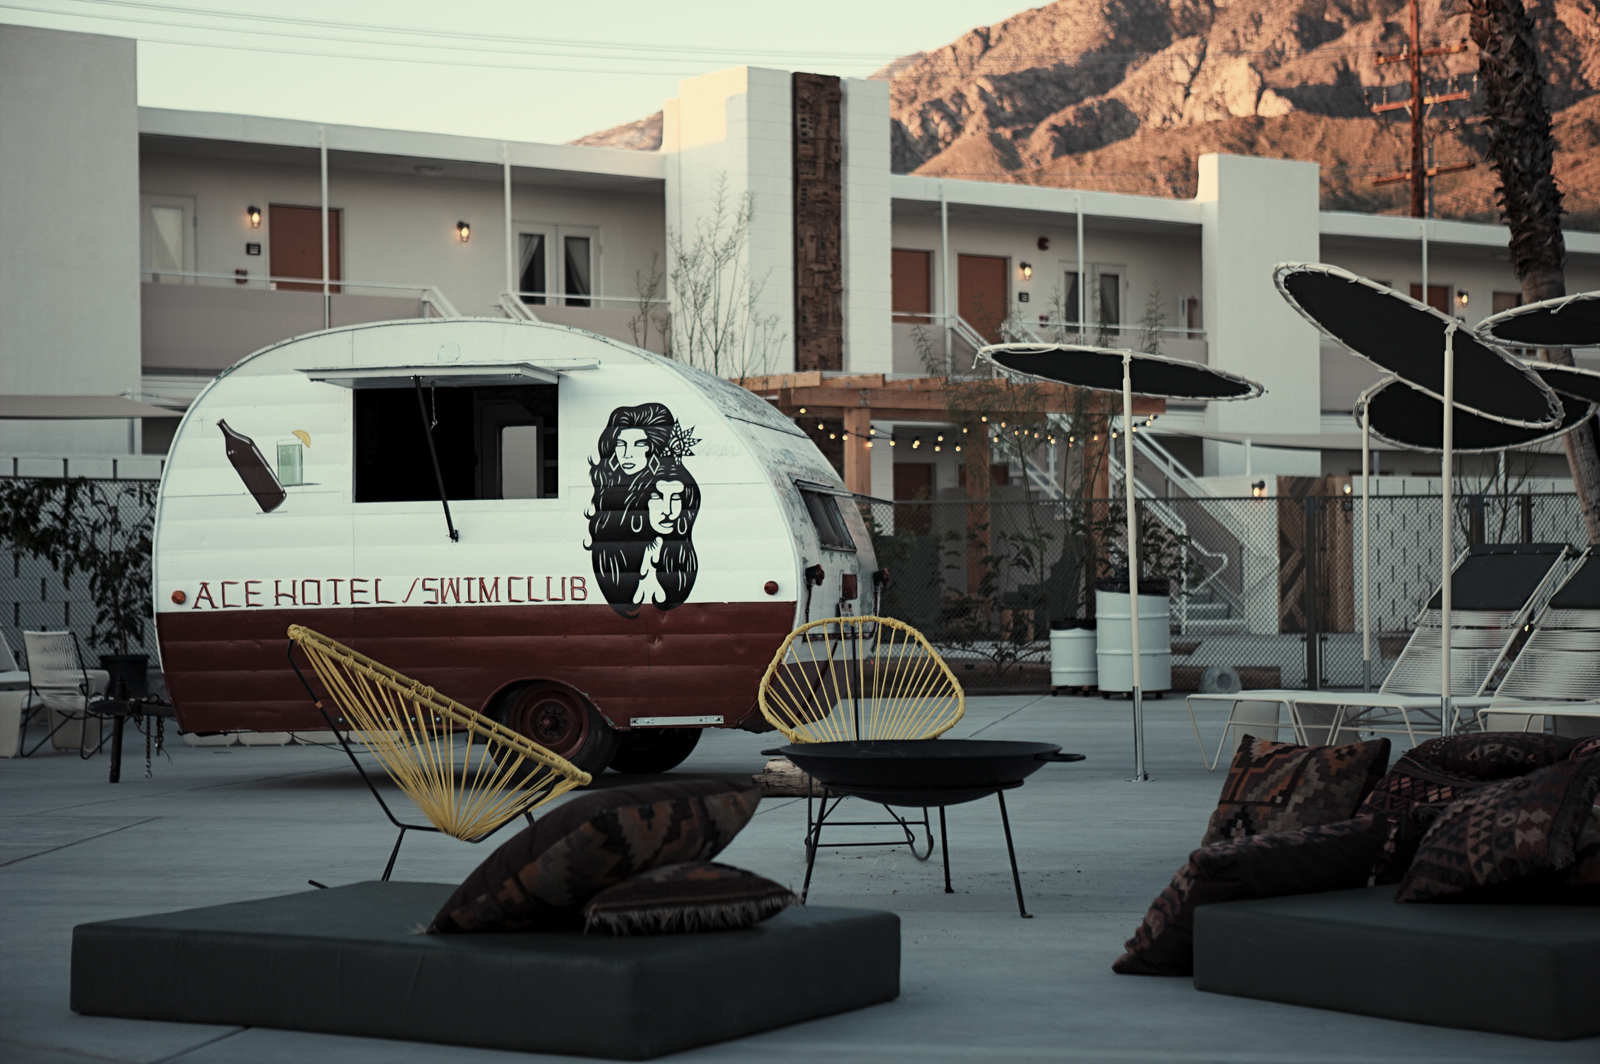 Ace Hotel in Palm Springs, California